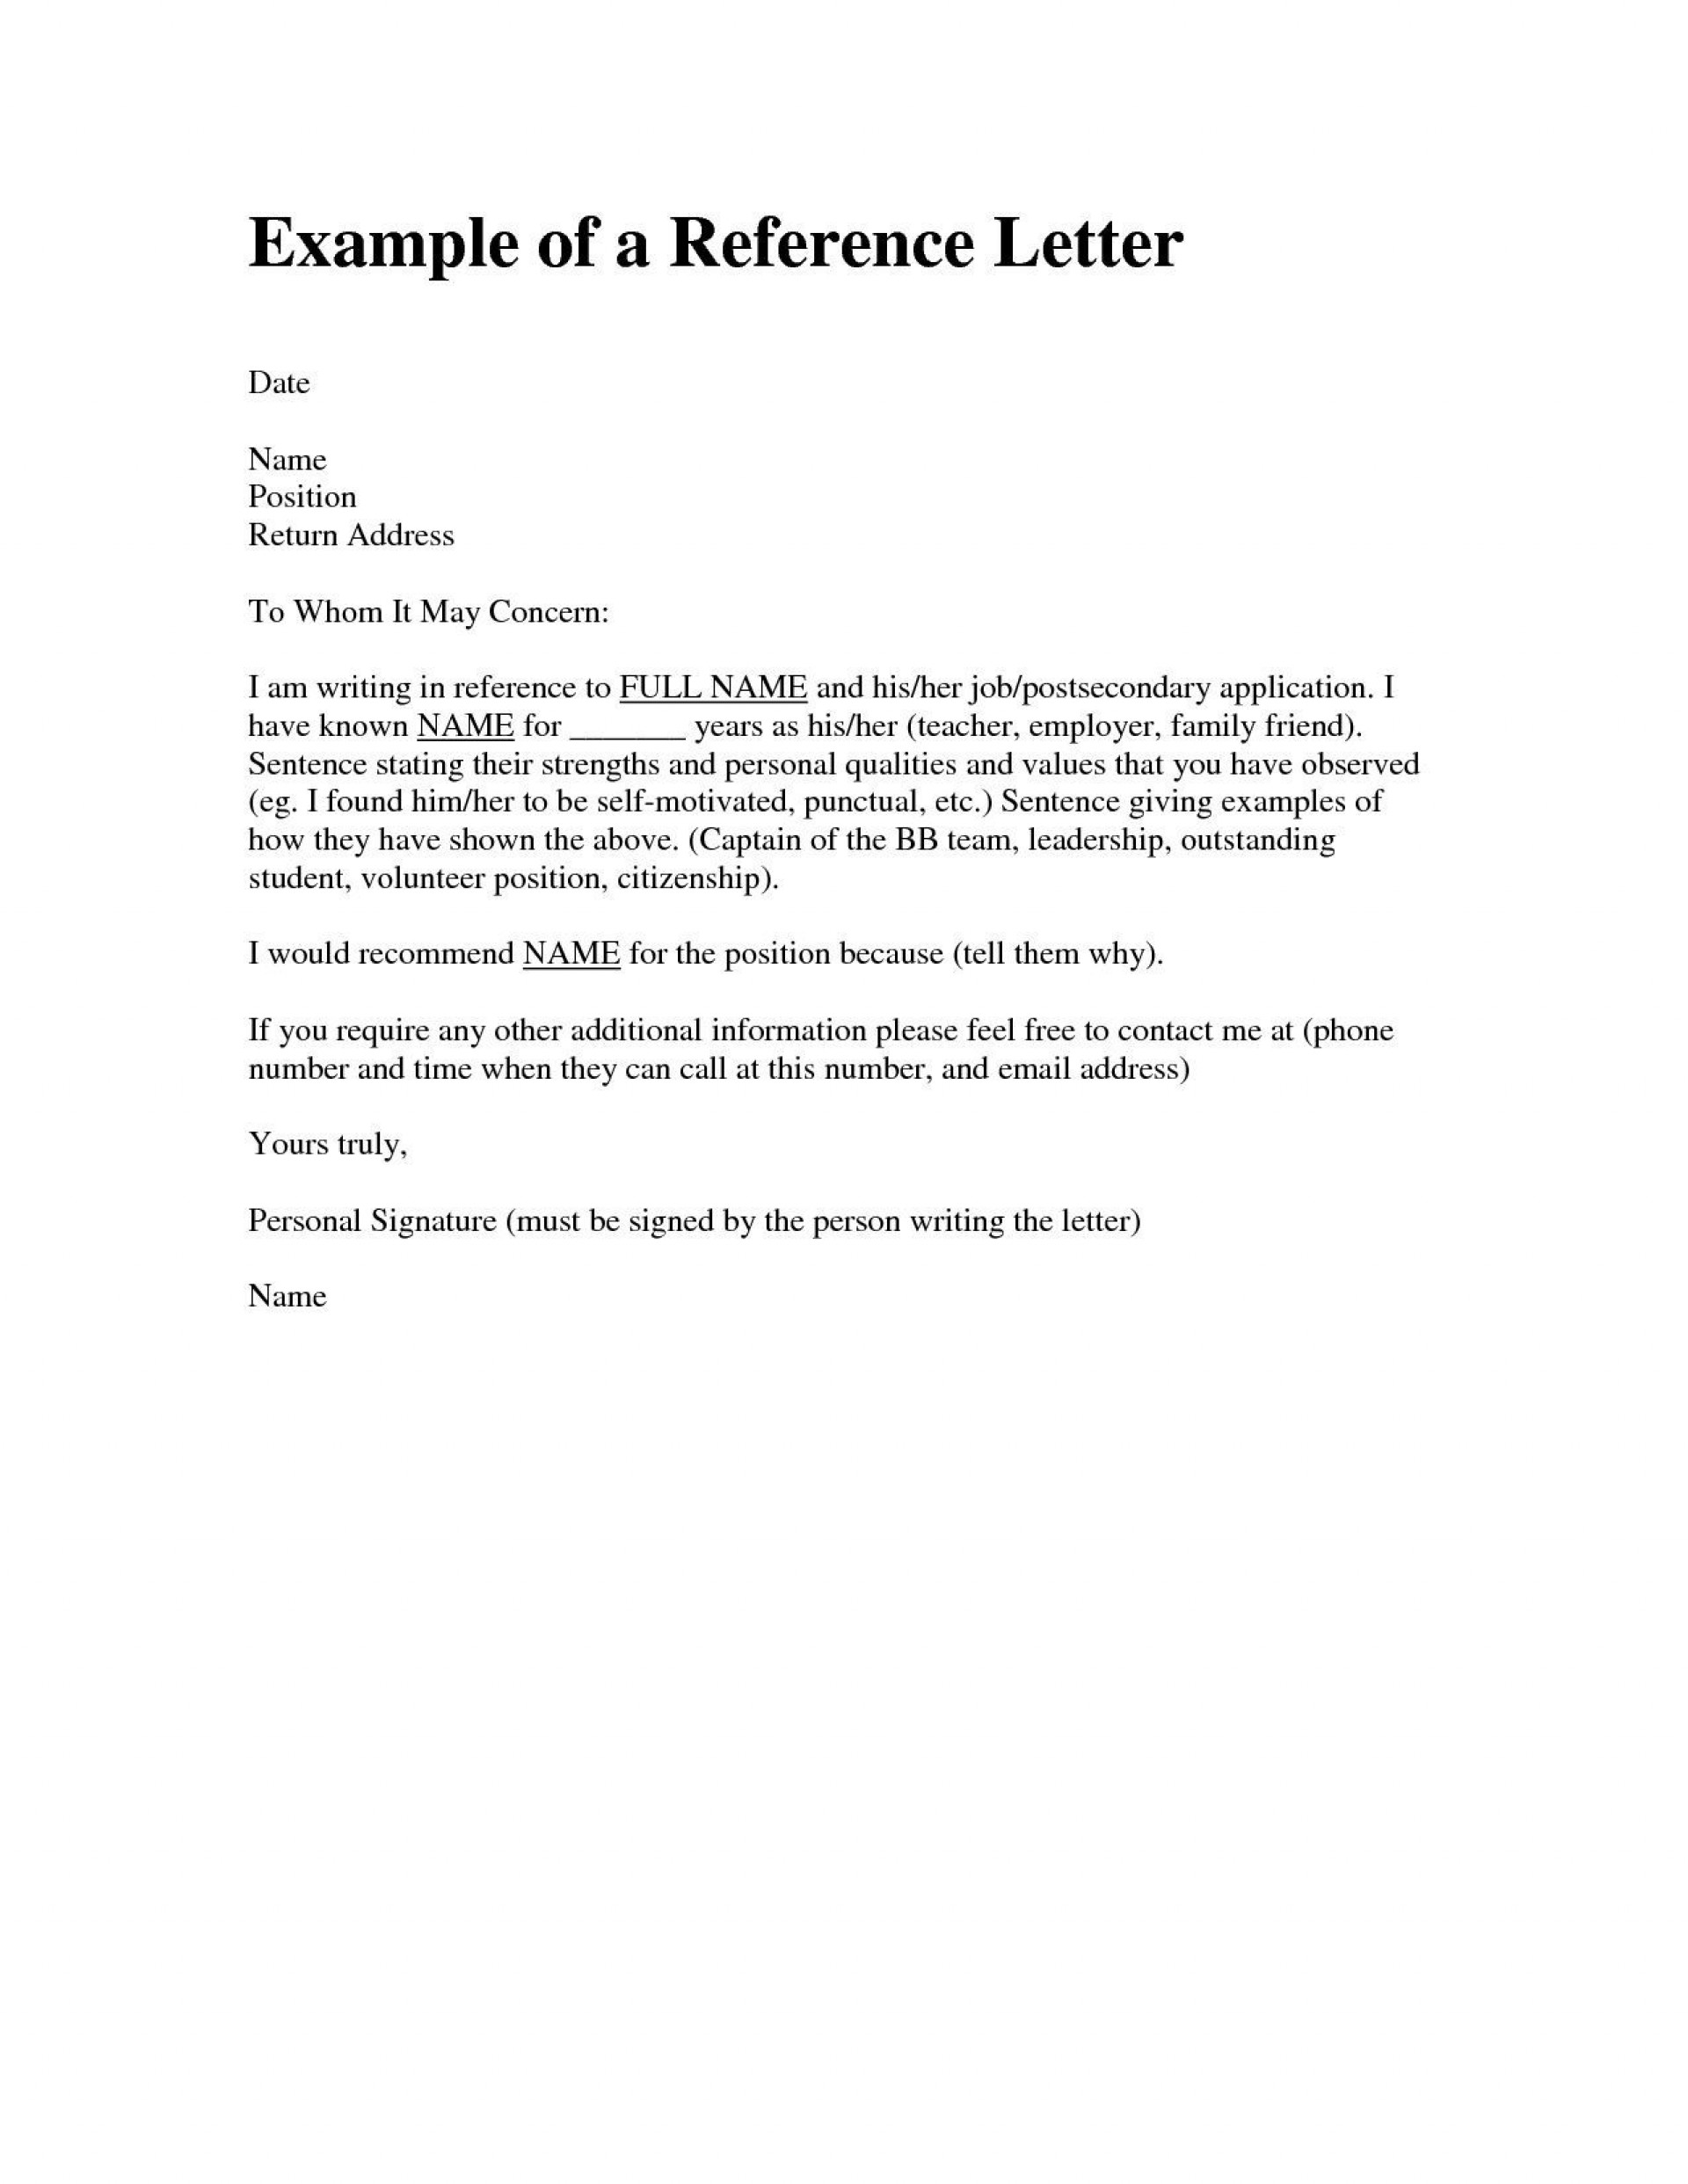 002 Magnificent Personal Reference Letter Template High Def  Character Word For Rental Application1920